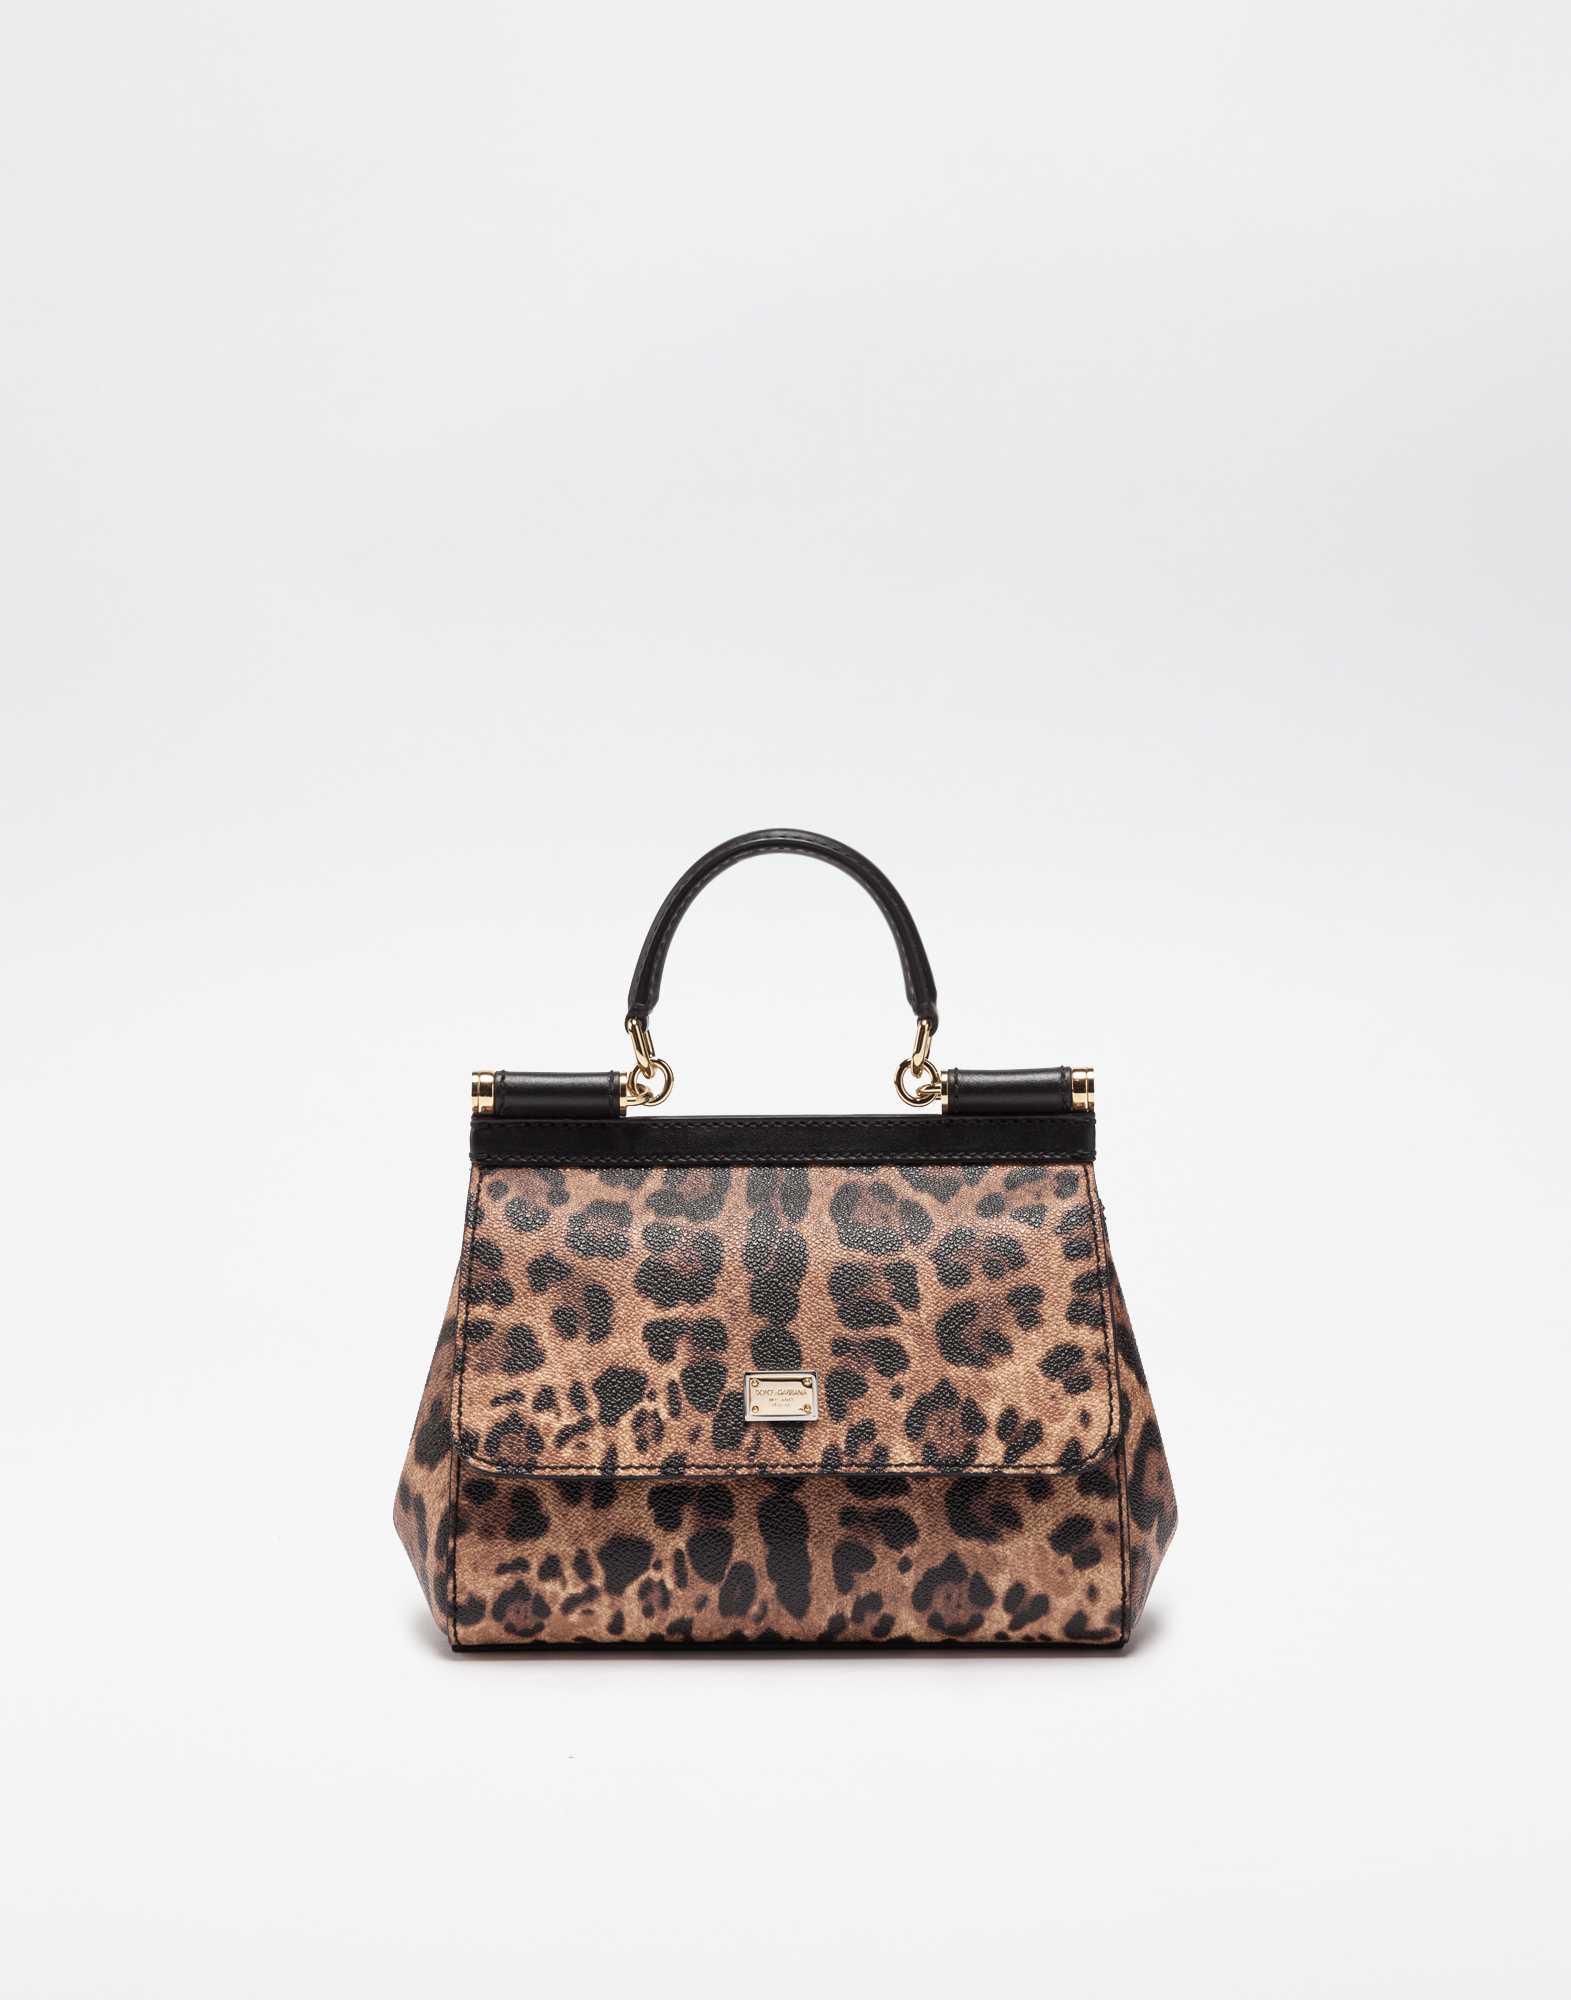 SMALL SICILY BAG IN LEOPARD TEXTURED LEATHER